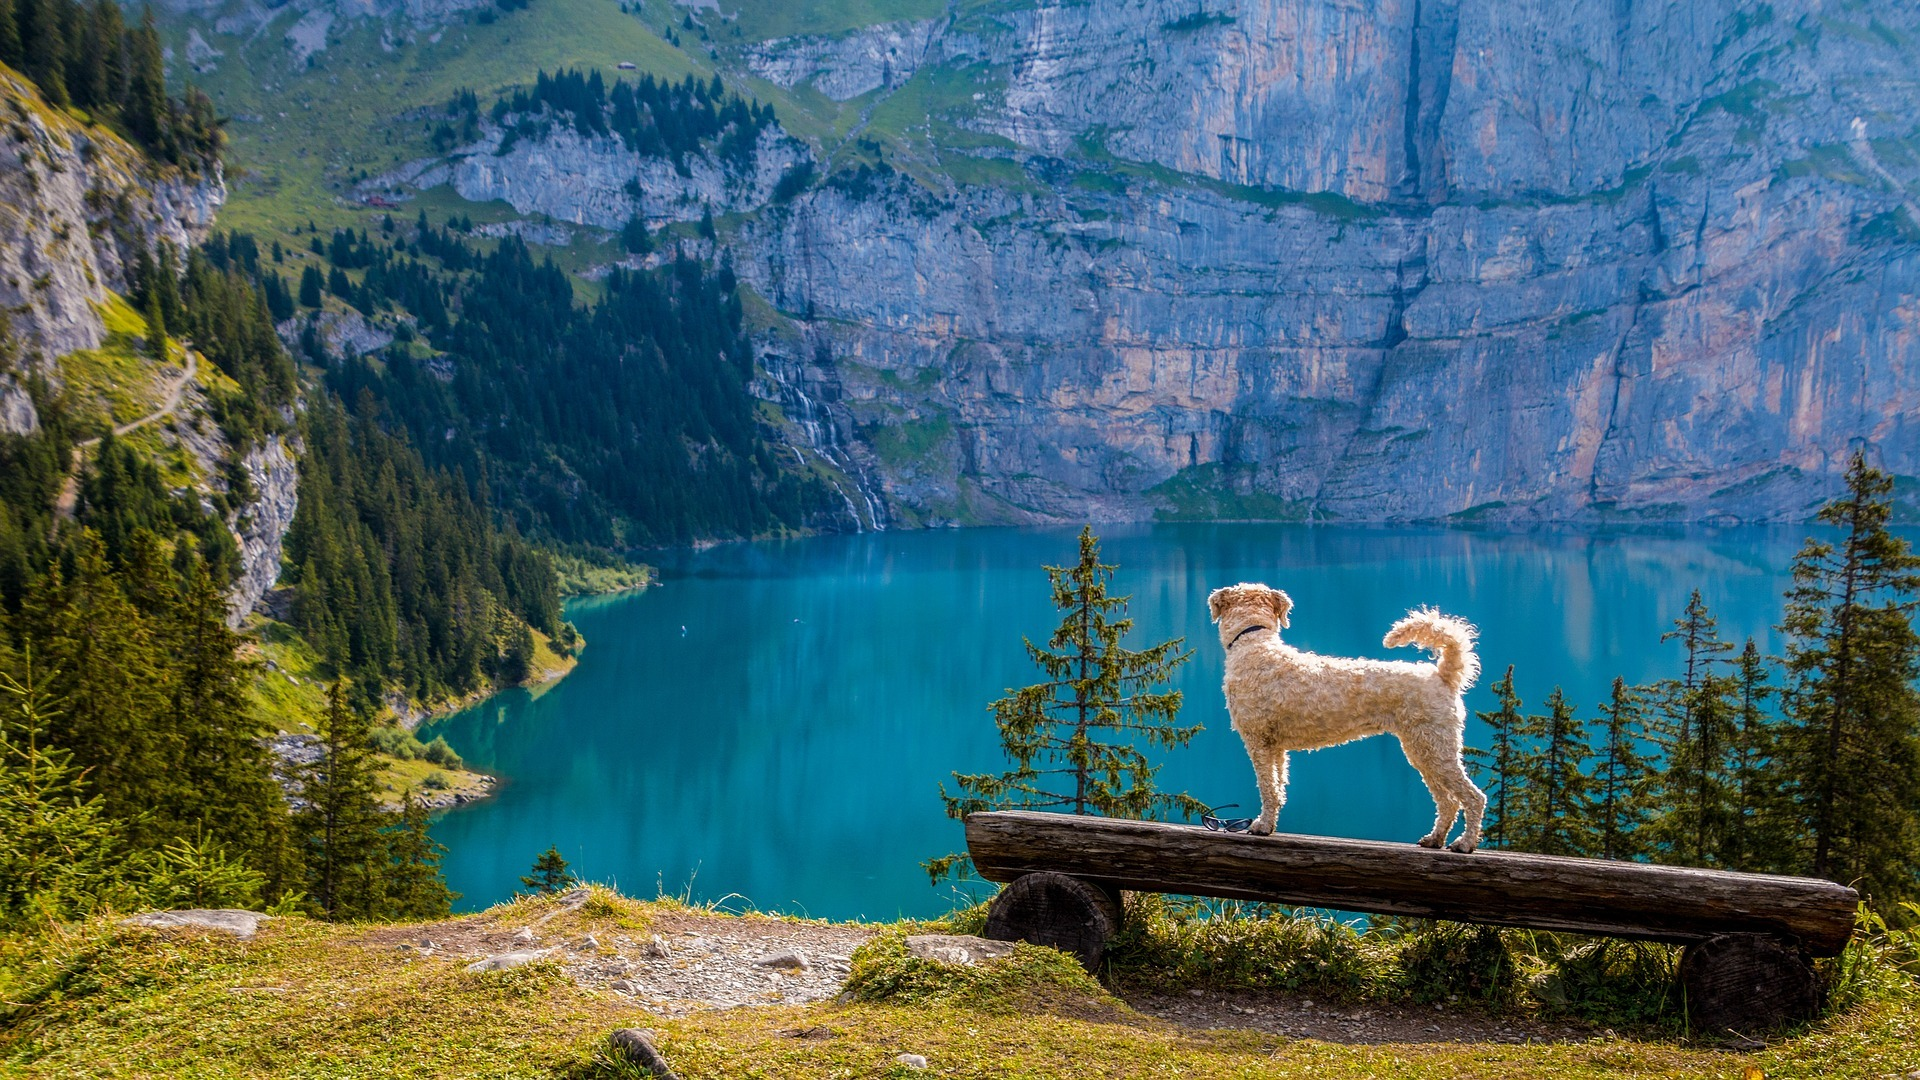 lake beside a mountain, a dog standing on a rock ledge